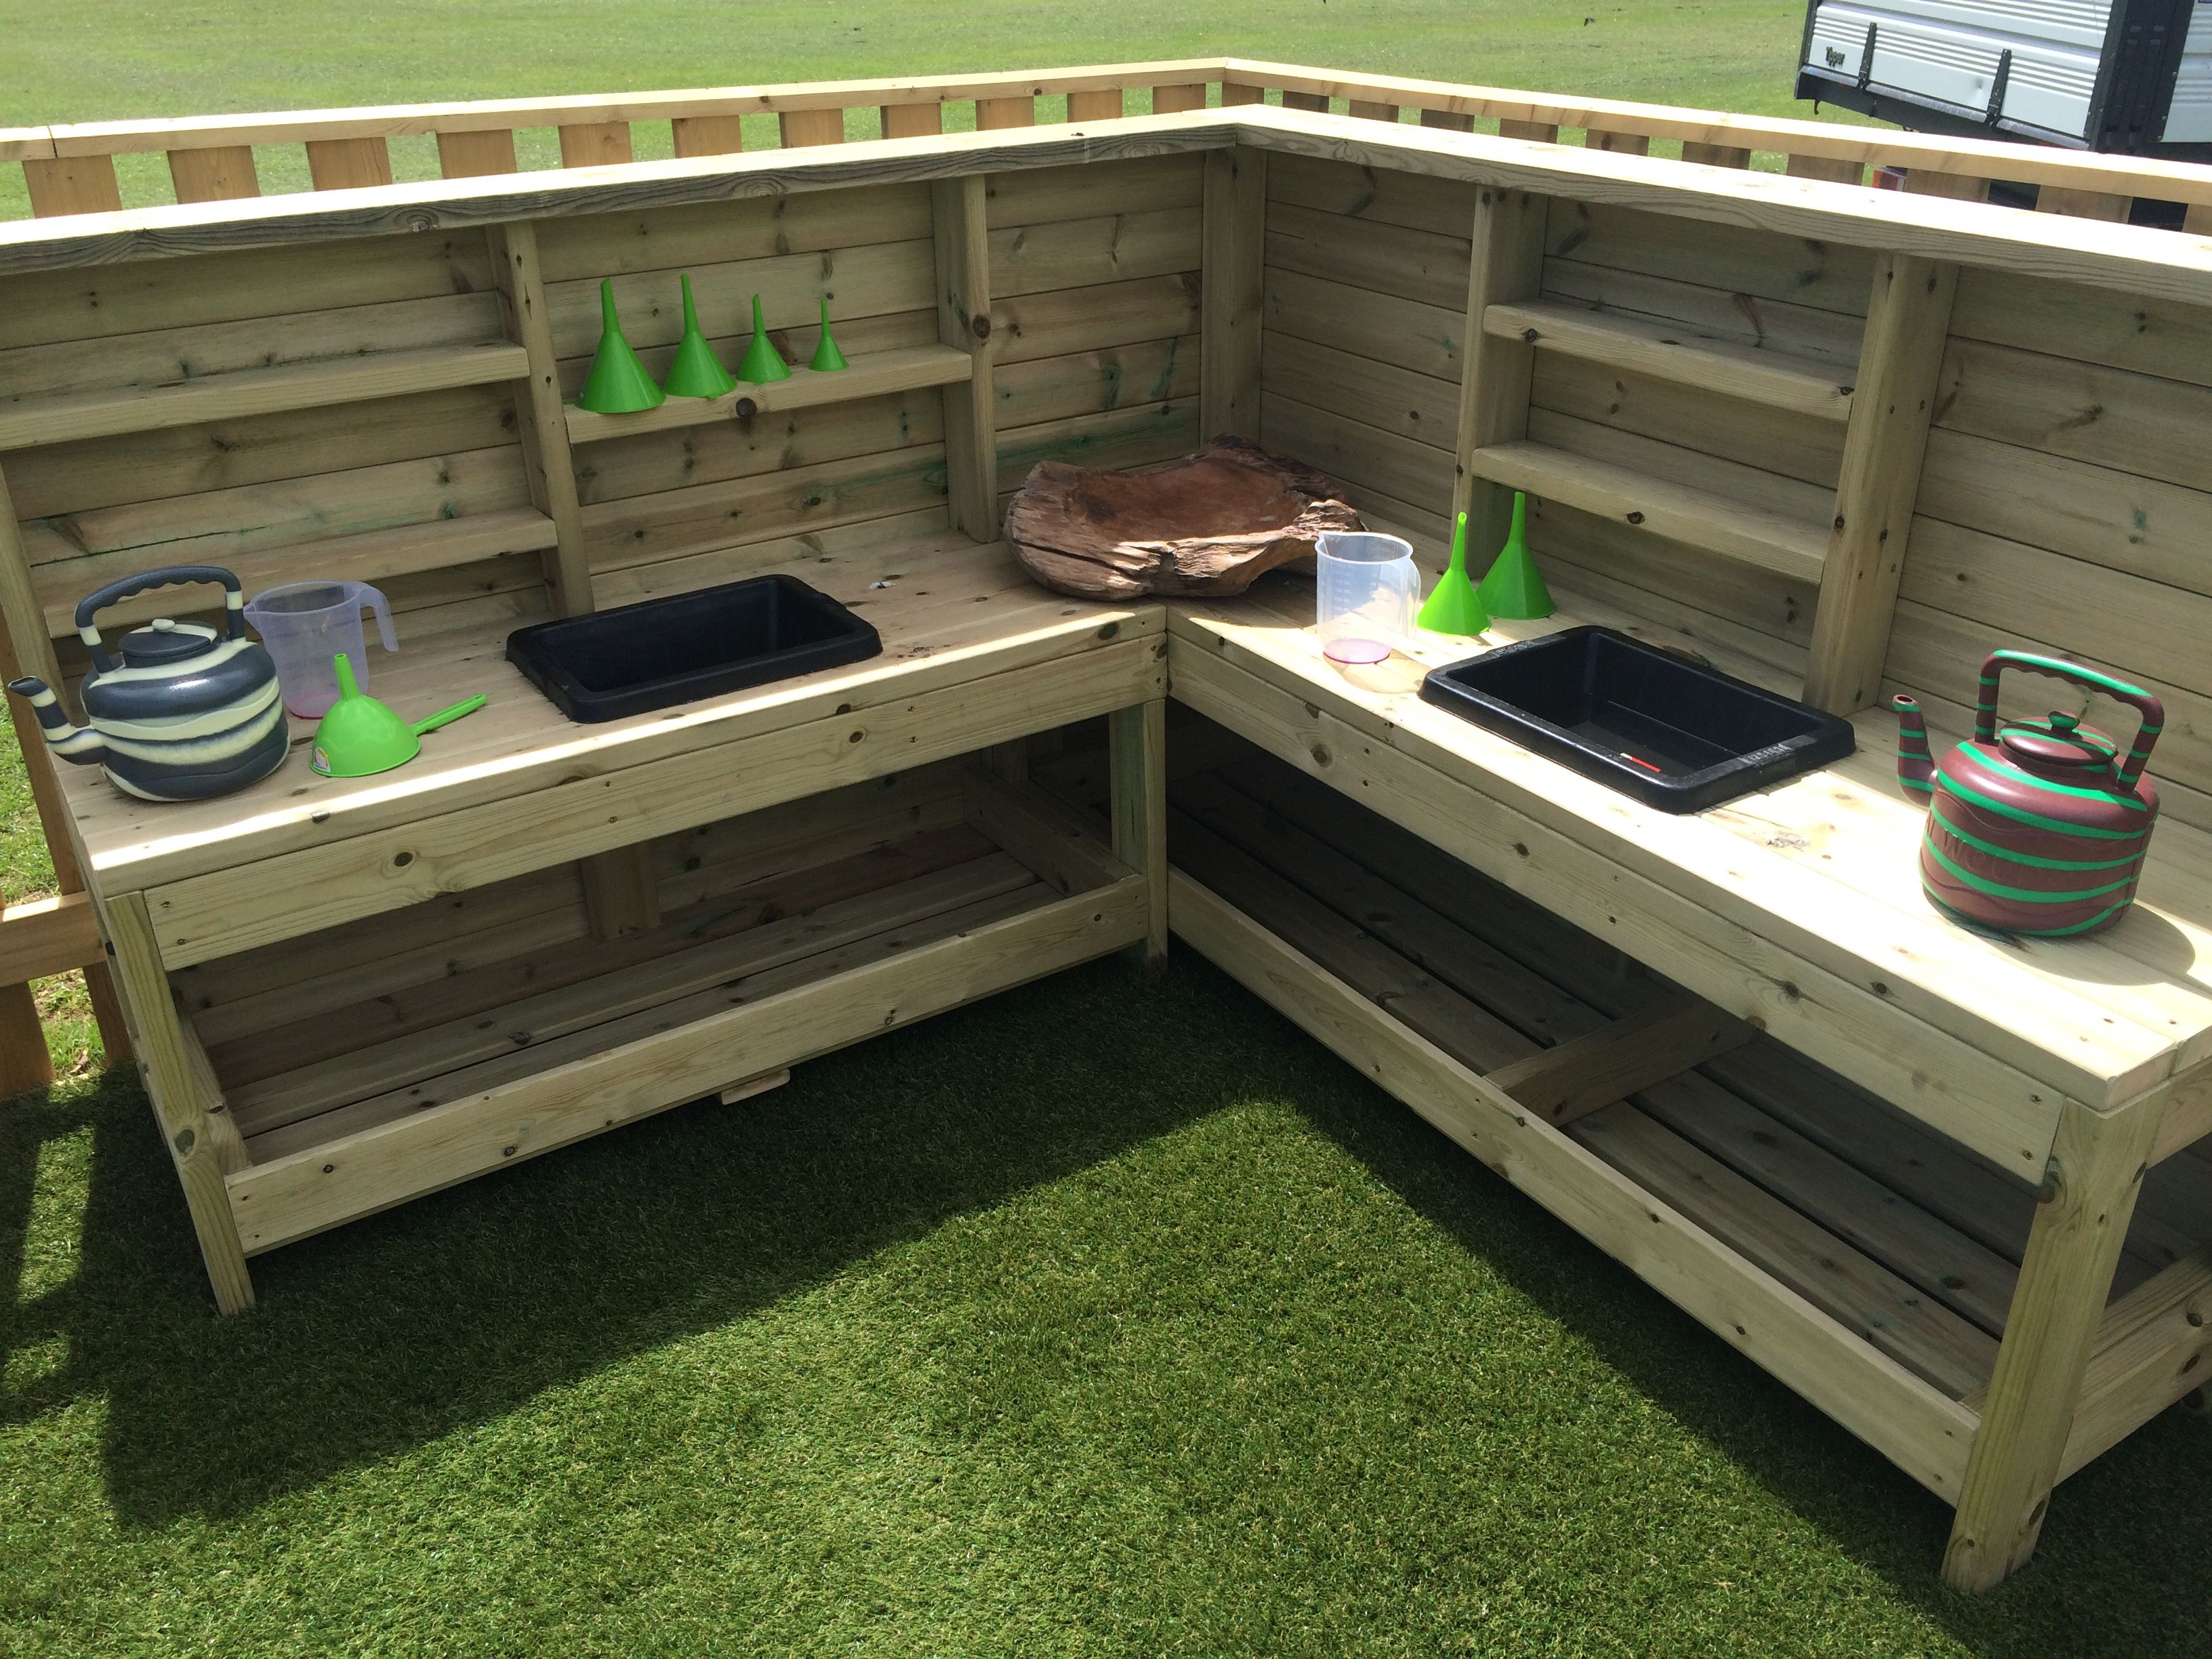 Timber L Shaped Mud Kitchen Outdoor Cooking Area Mud Kitchen Outdoor Cooking Spaces